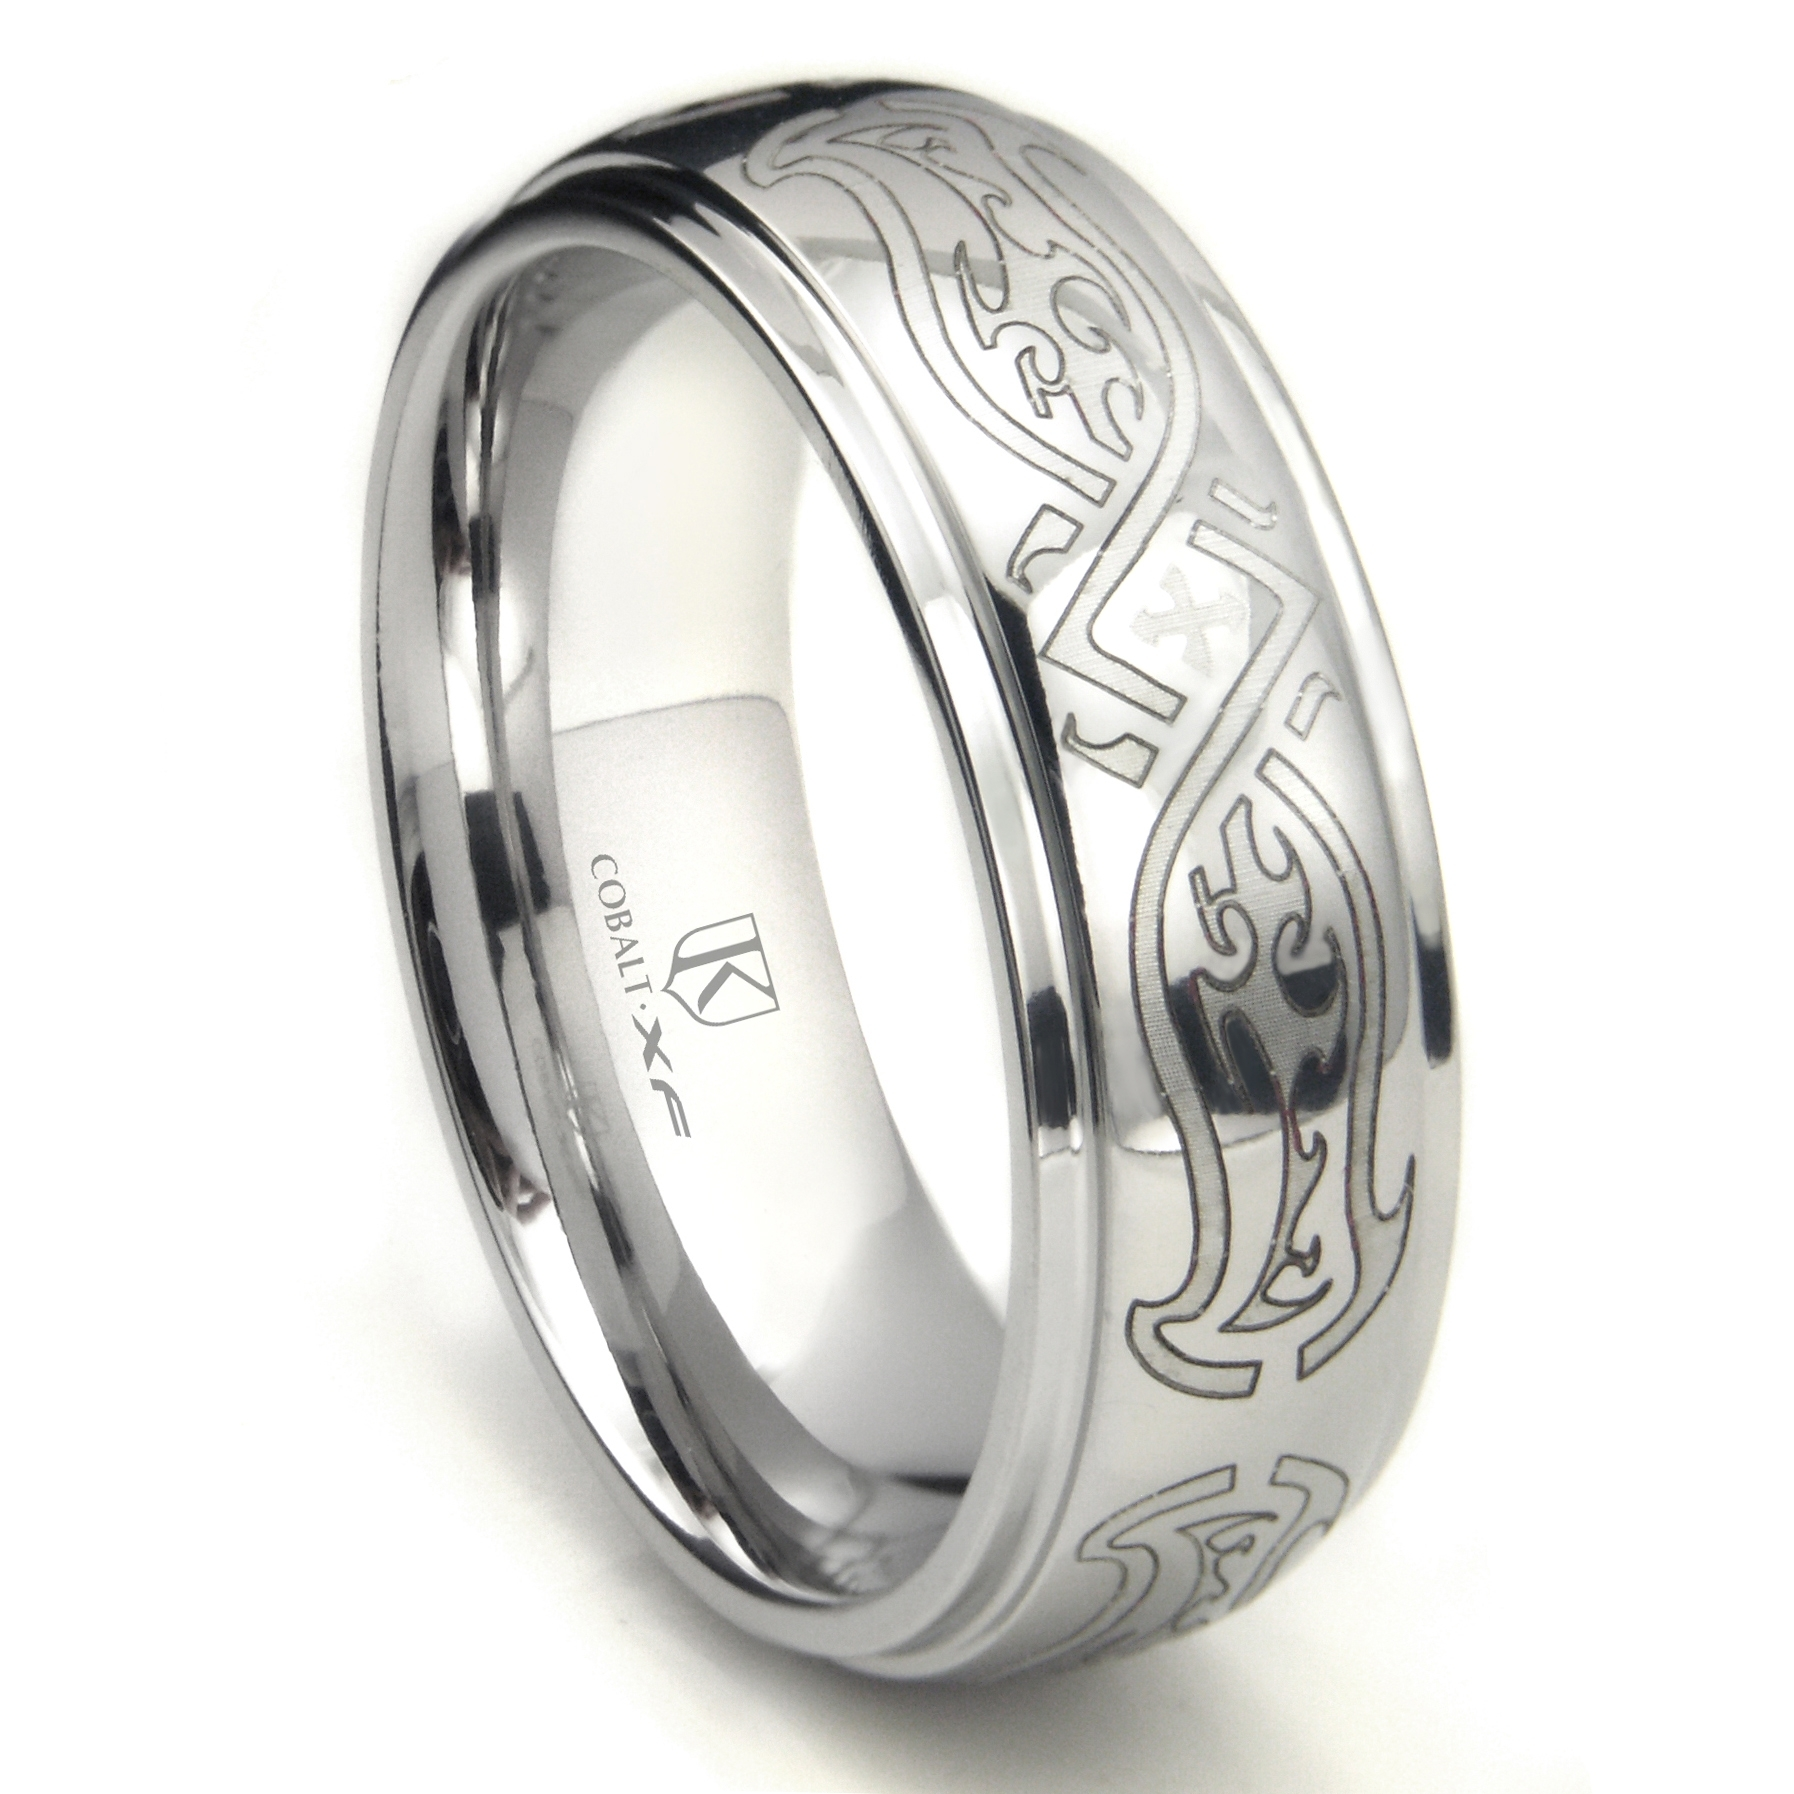 Cobalt Xf Chrome 8mm Celtic Wedding Band Ring For Latest Polished Comfort Fit Cobalt Chrome Wedding Bands (View 8 of 15)